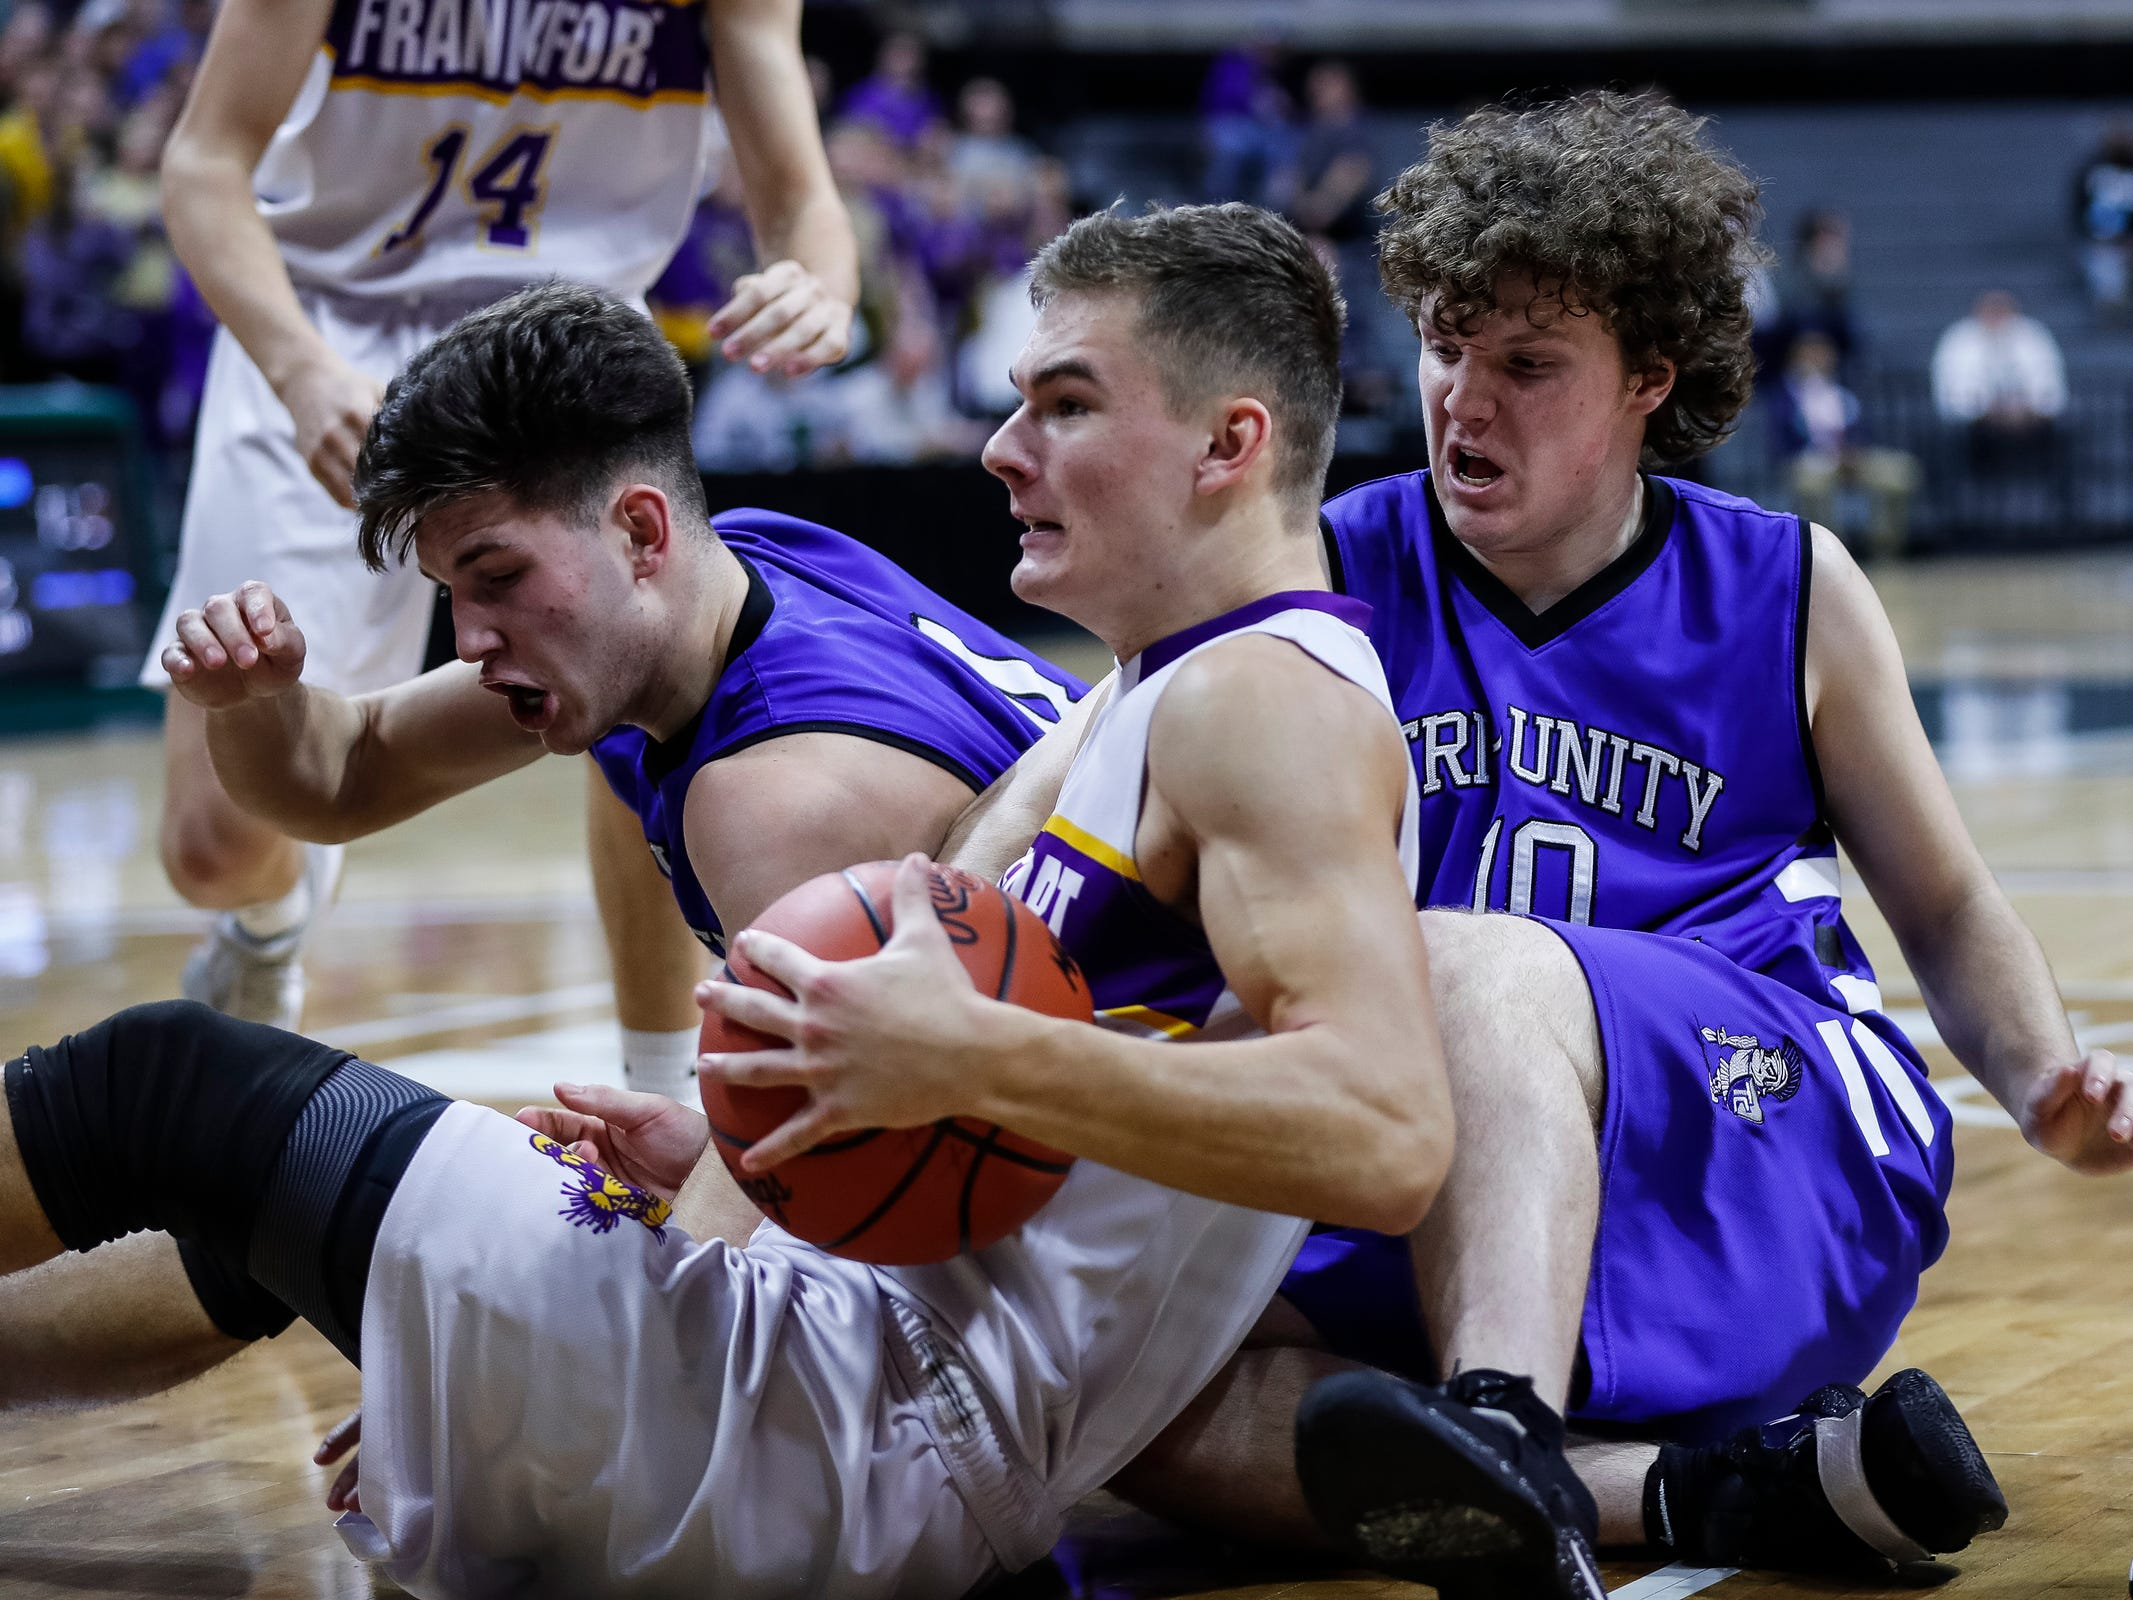 Frankfort's Conner Smith (15) battle for the loose ball with Wyoming Tri-unity Christian's Brayden Ophoff (4) and Bennett Sinner (10) during the first half of MHSAA Division 4 semifinal at the Breslin Center in East Lansing, Thursday, March 14, 2019.